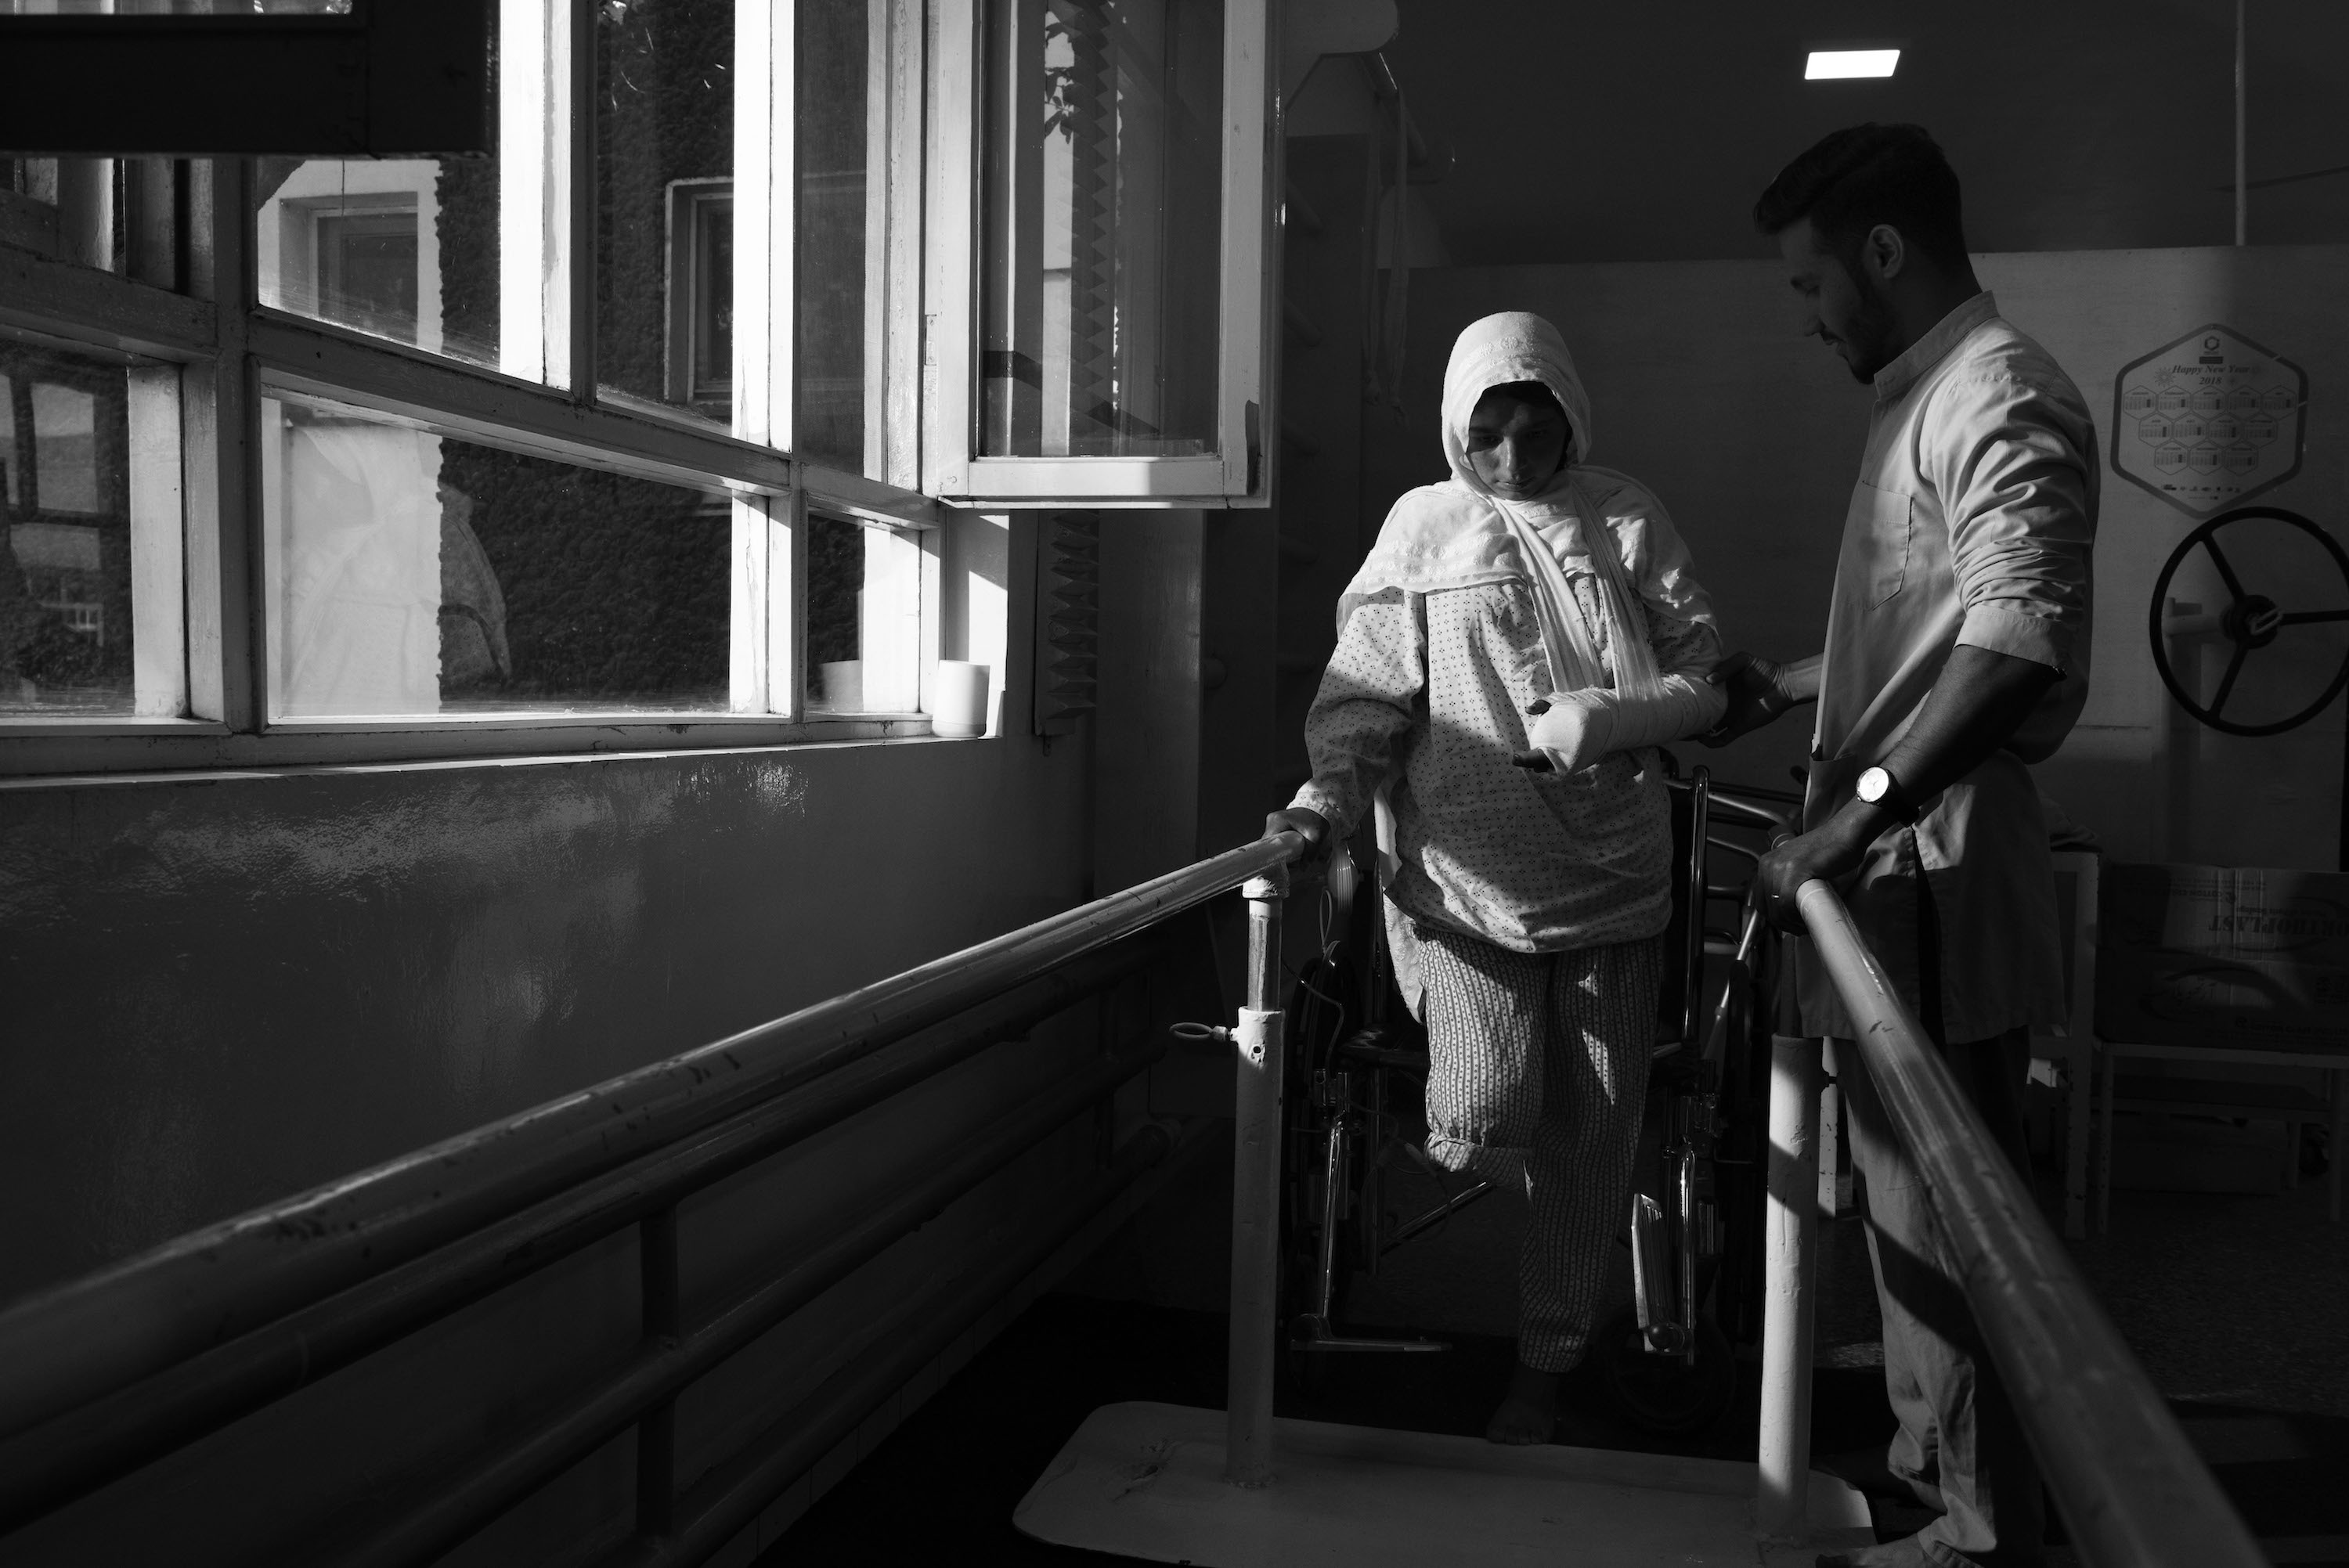 A woman walks with help of railings and medical staff